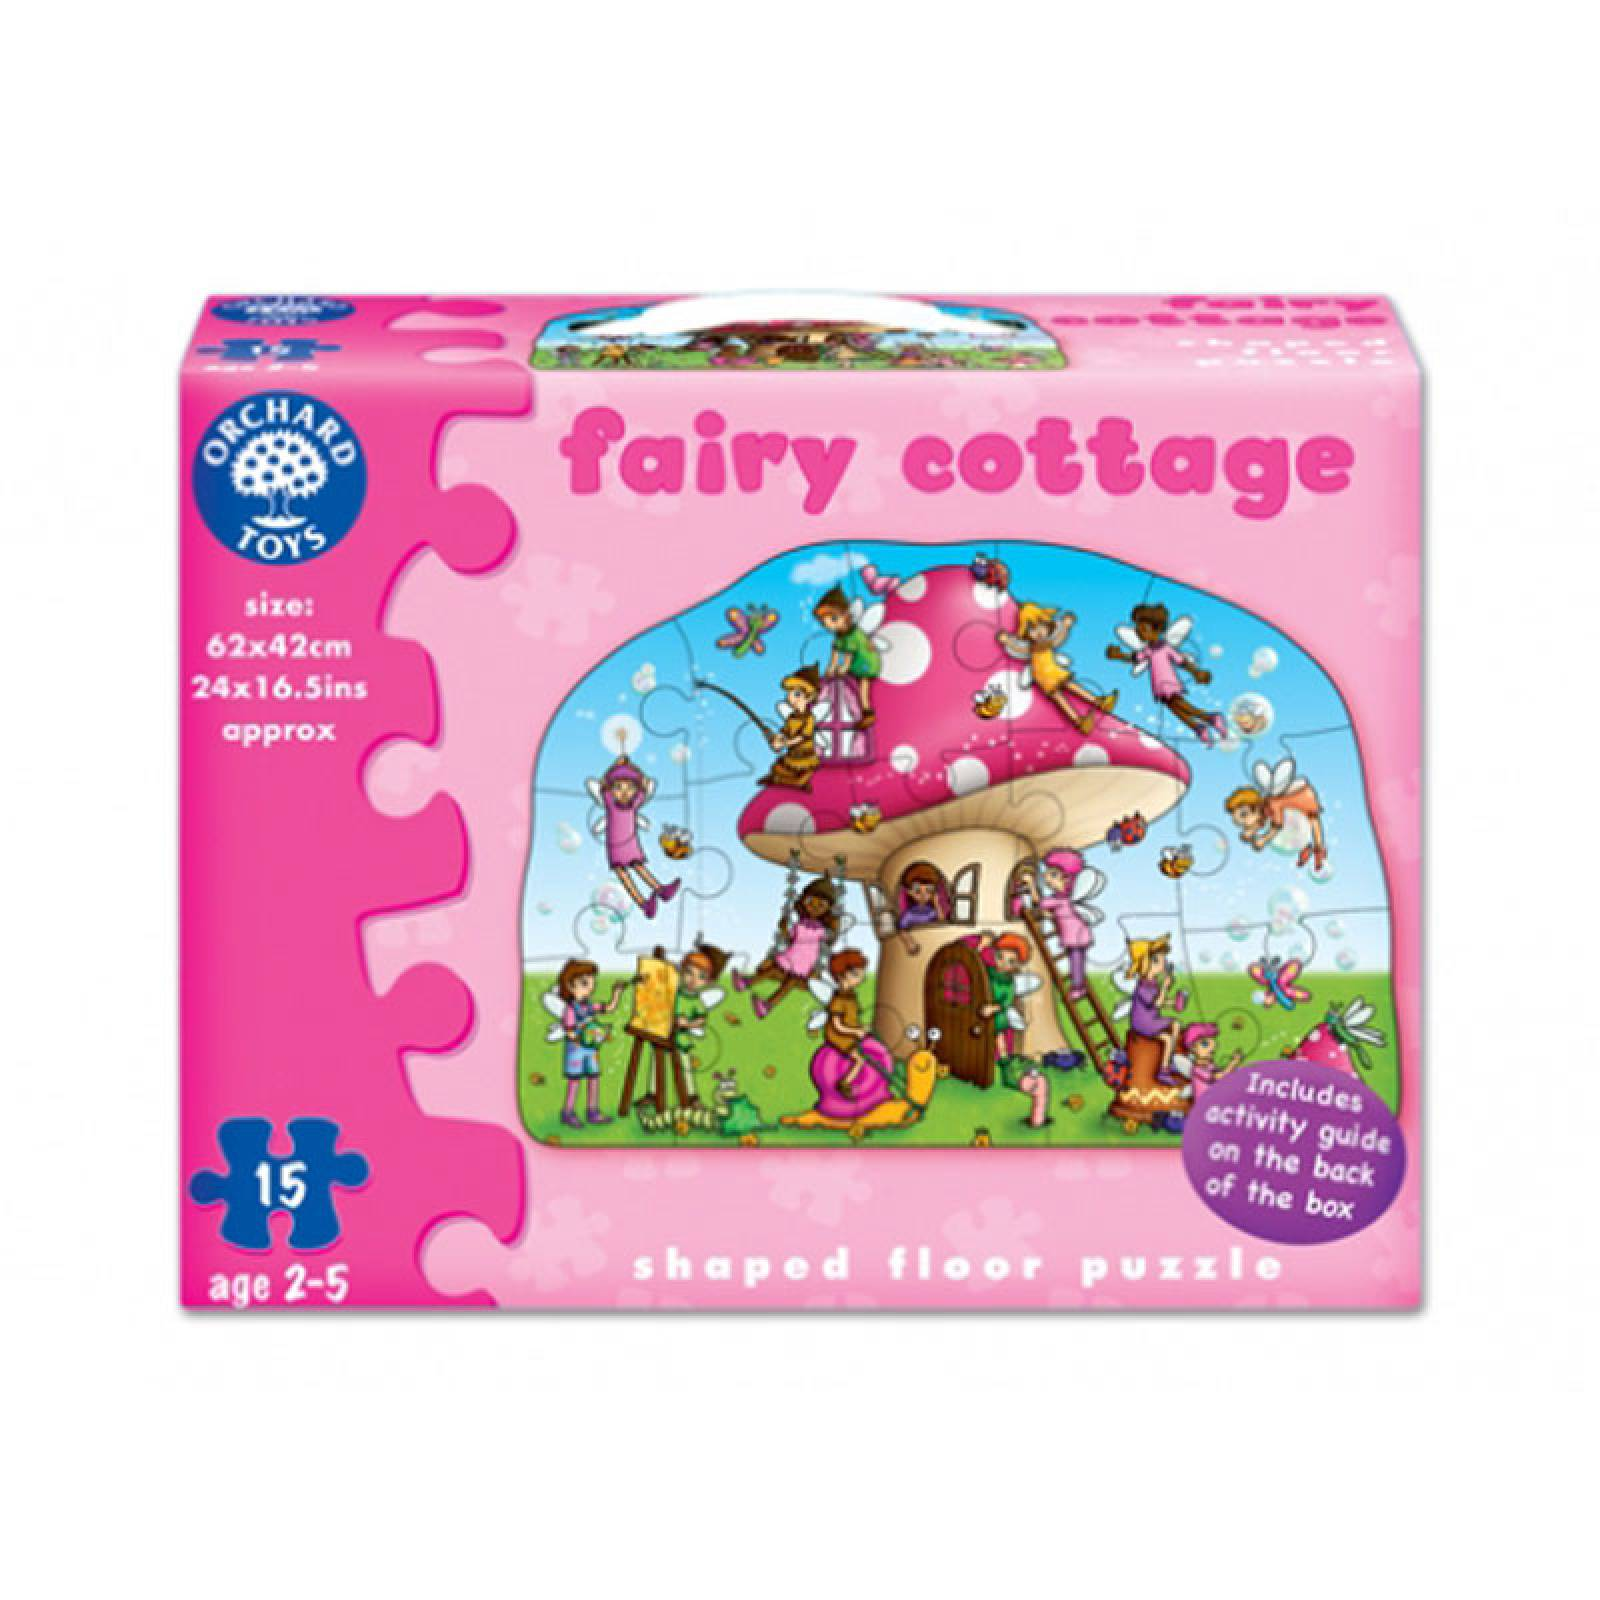 Fairy Cottage Puzzle Jigsaw By Orchard Toys 3-6yrs thumbnails